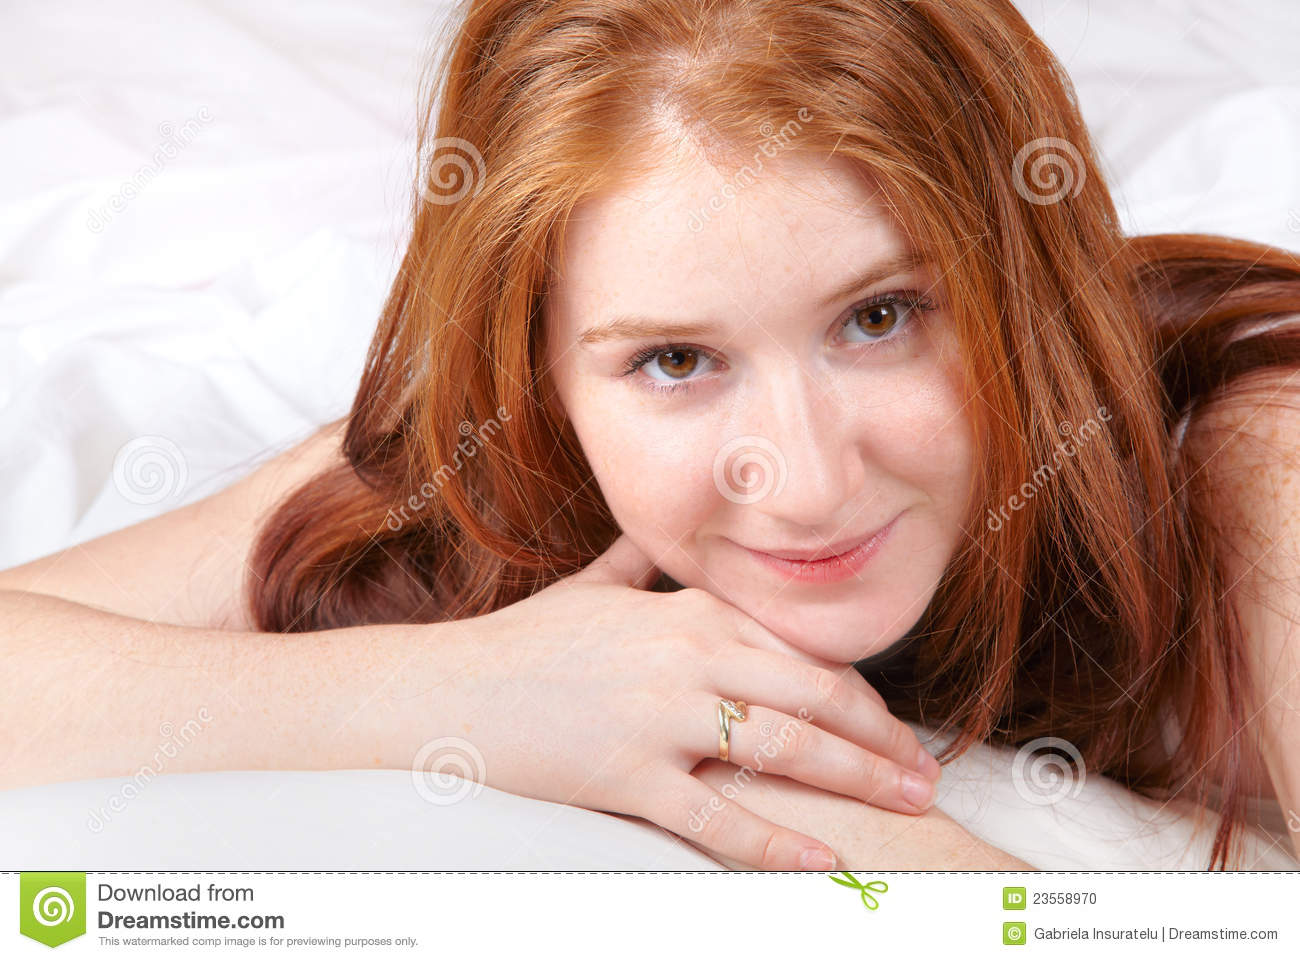 Magnificent words redhead in the bed remarkable, very